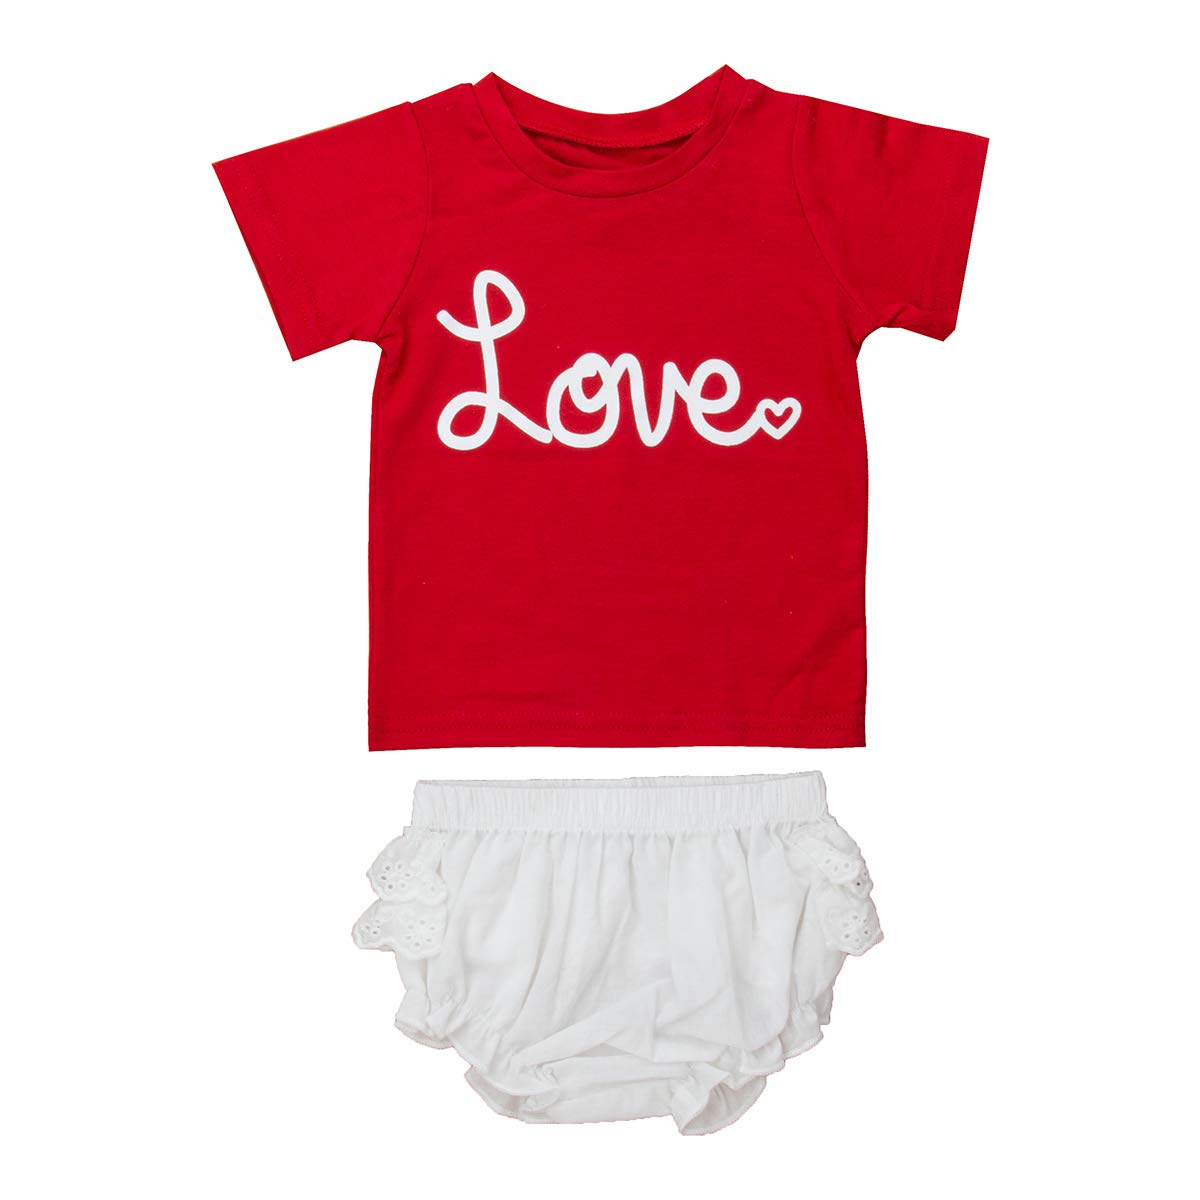 Newborn Baby Girl Valentines Day Outfit Red Love Print T-Shirt Tutu Tulle Shorts 2Pcs Clothes Set